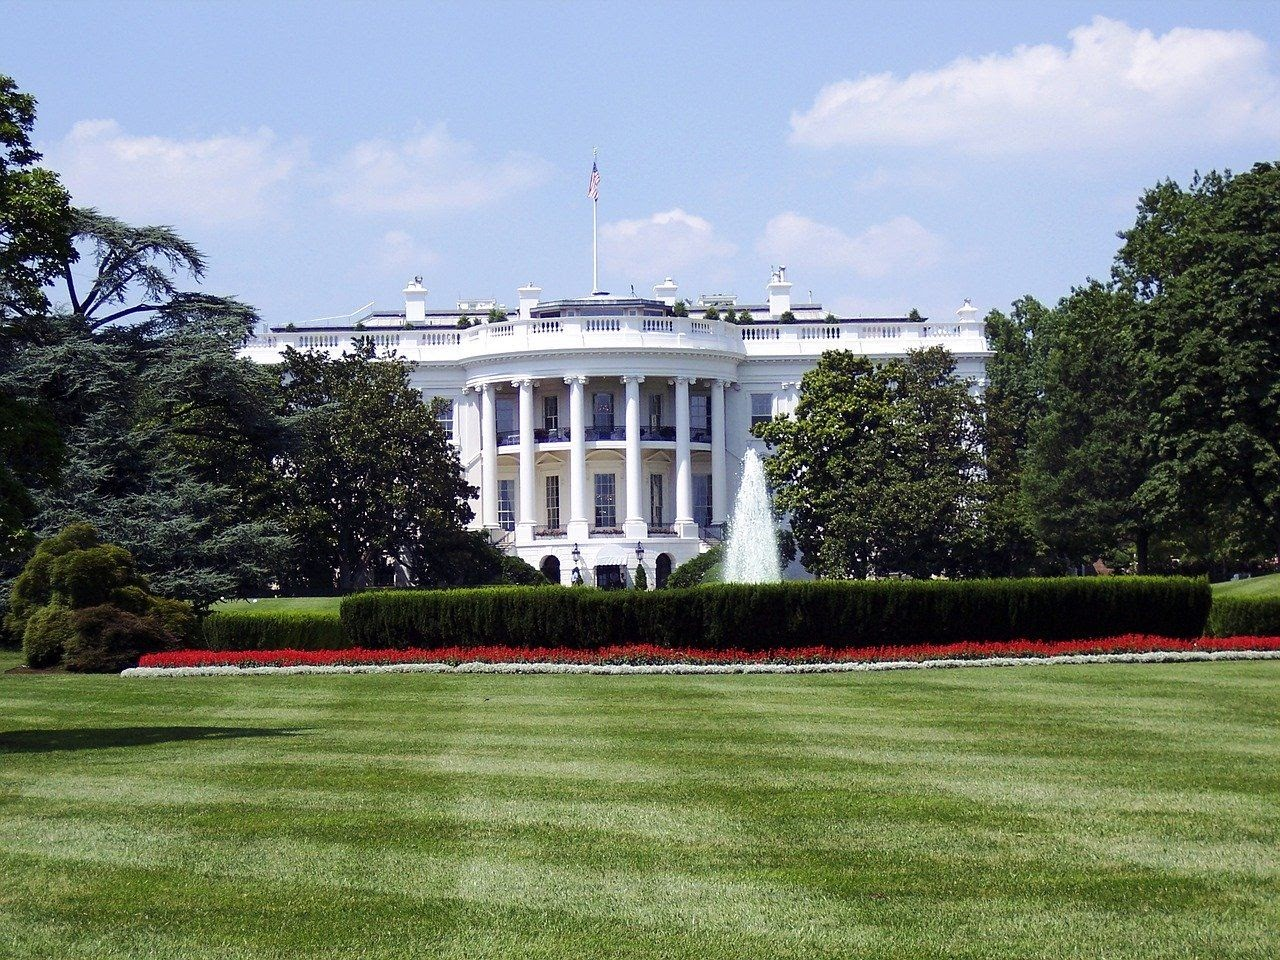 The White House in America's political capital, Washington DC.